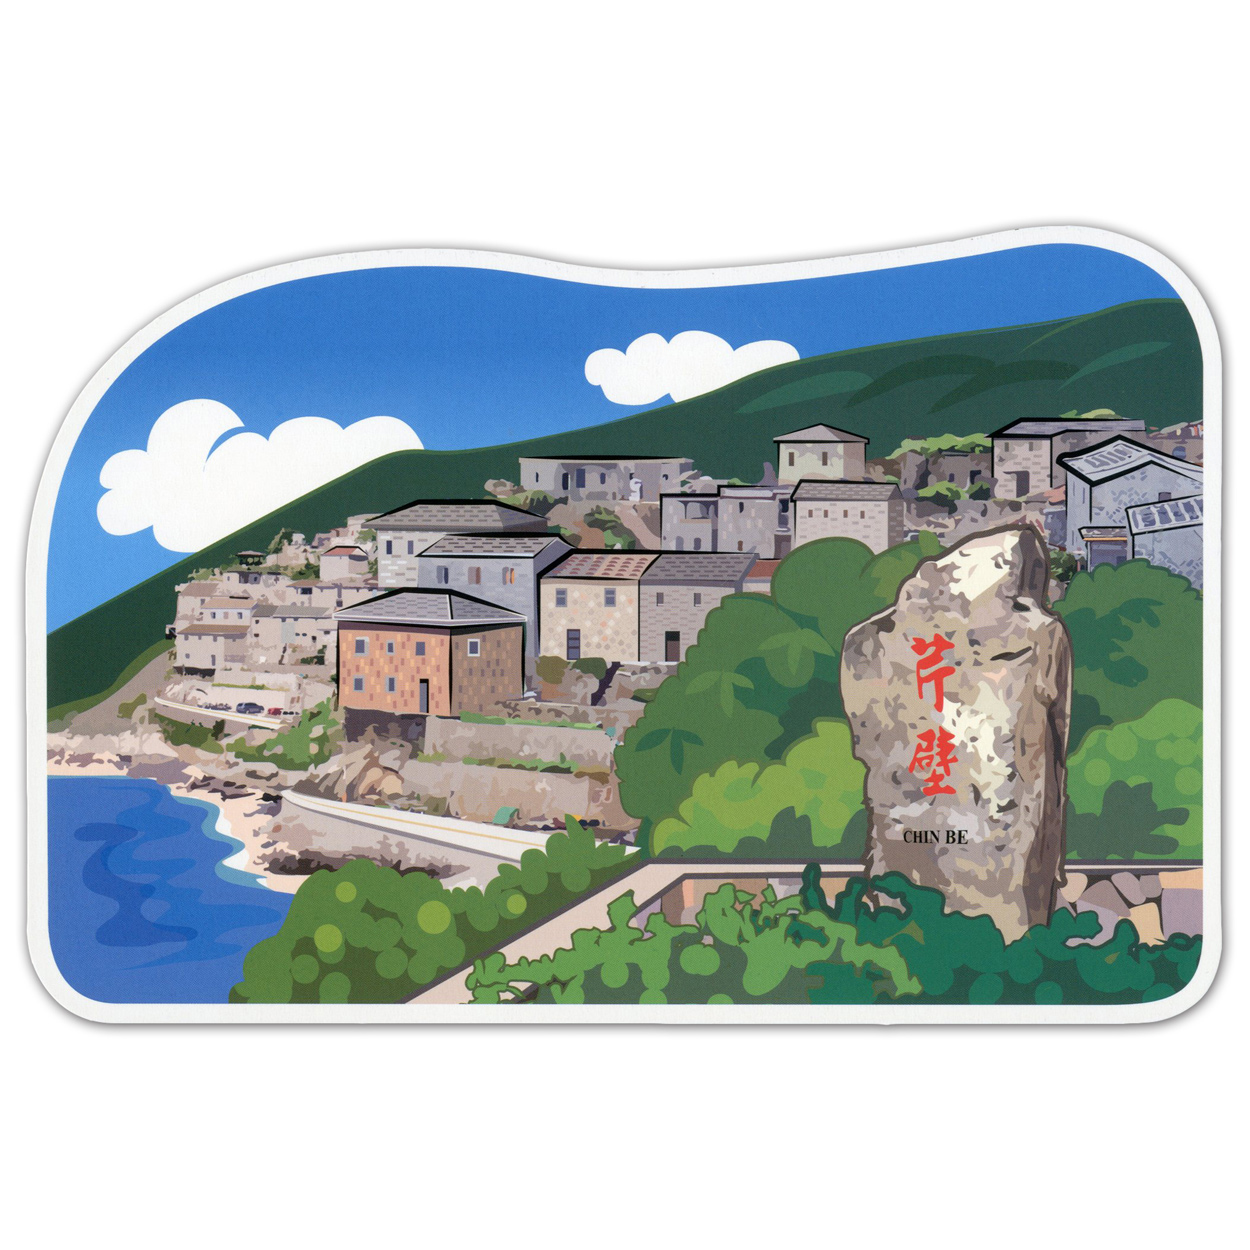 Joyful Travel in Matsu Shaped Card-Qinbi Village